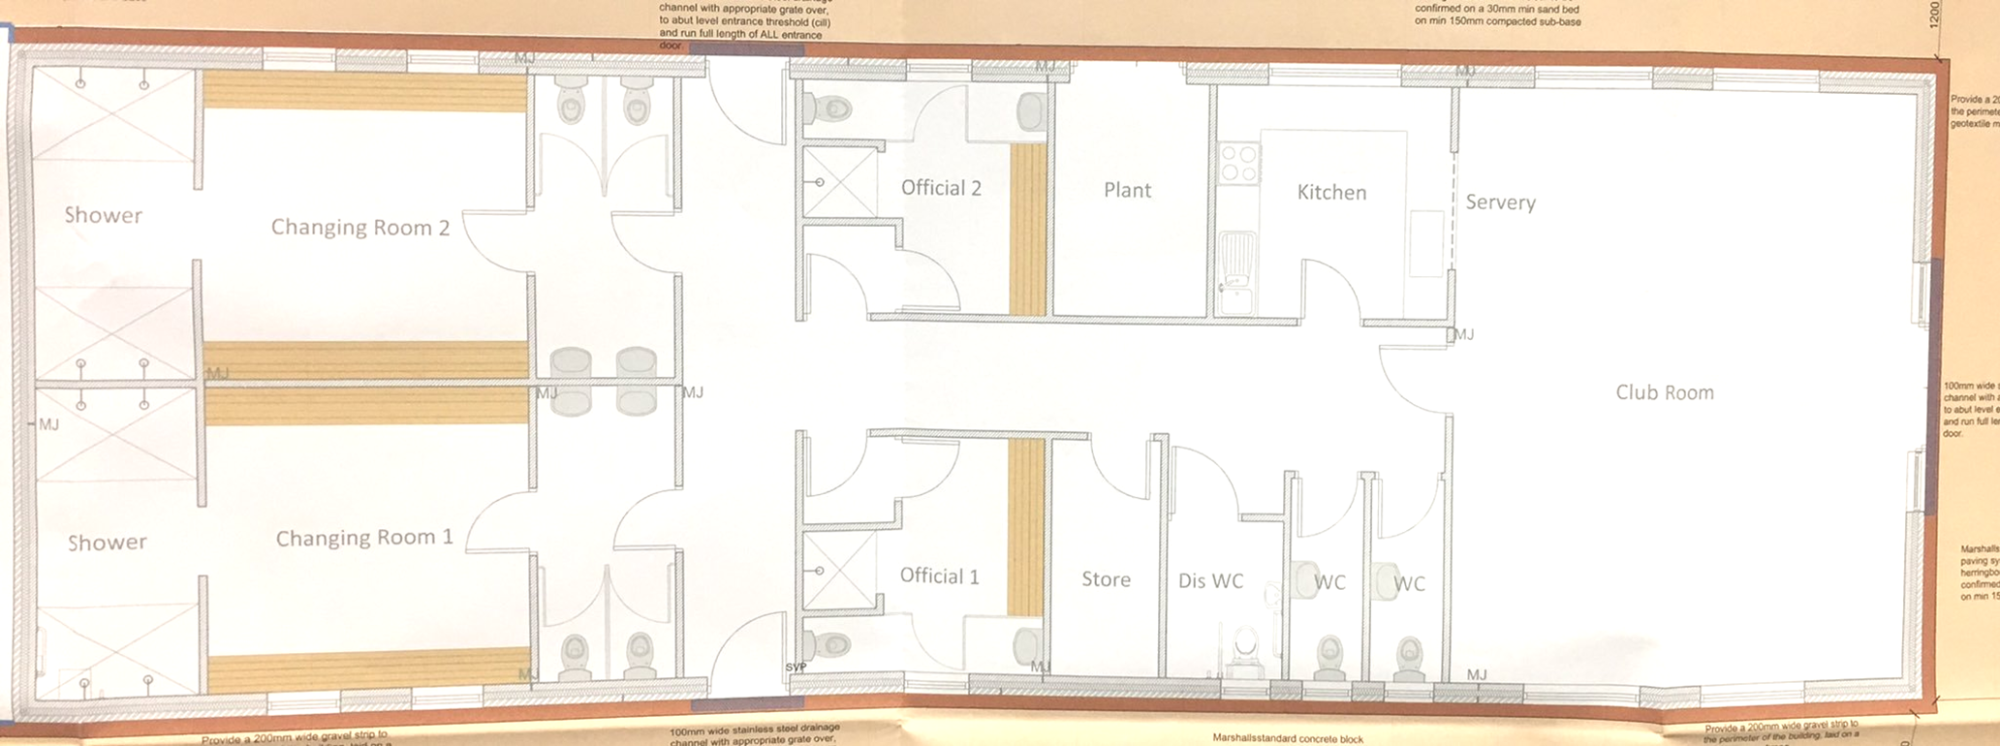 new internal plan for clubhouse